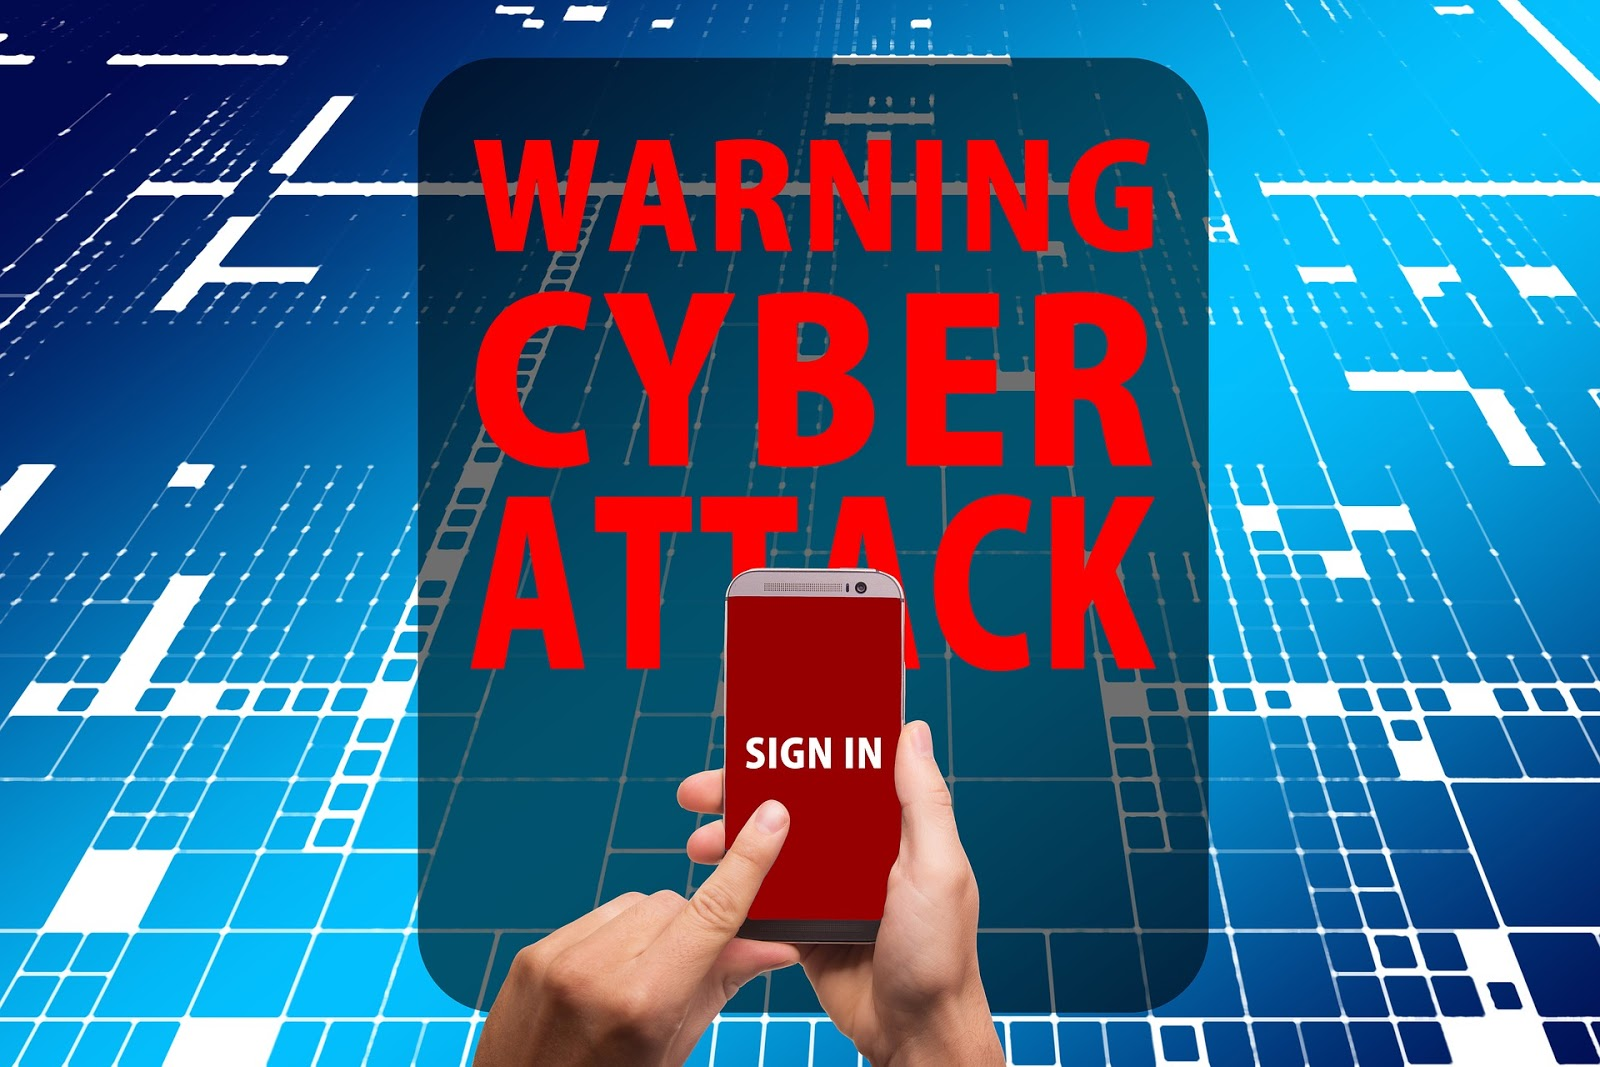 How to Detect a Cyber Attack